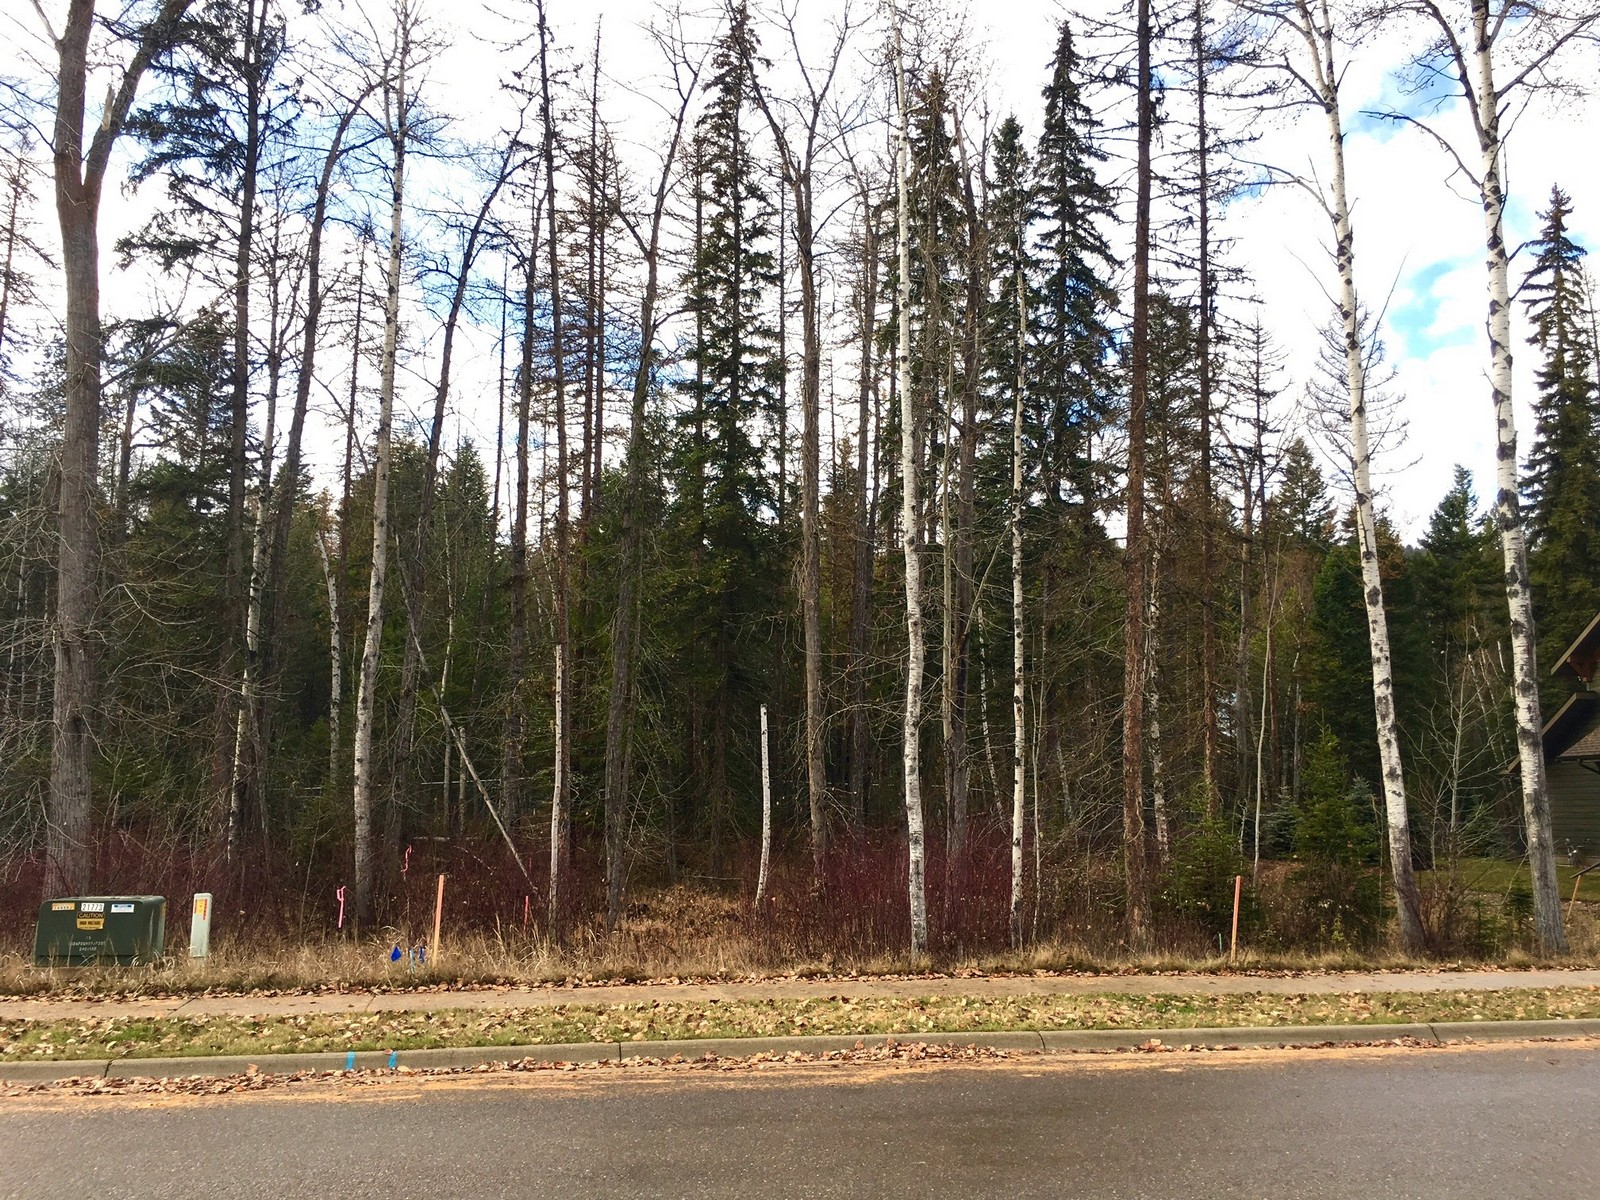 Land for Sale at 1050 Meadowlark Ln , Whitefish, MT 59937 1050 Meadowlark Ln Whitefish, Montana 59937 United States